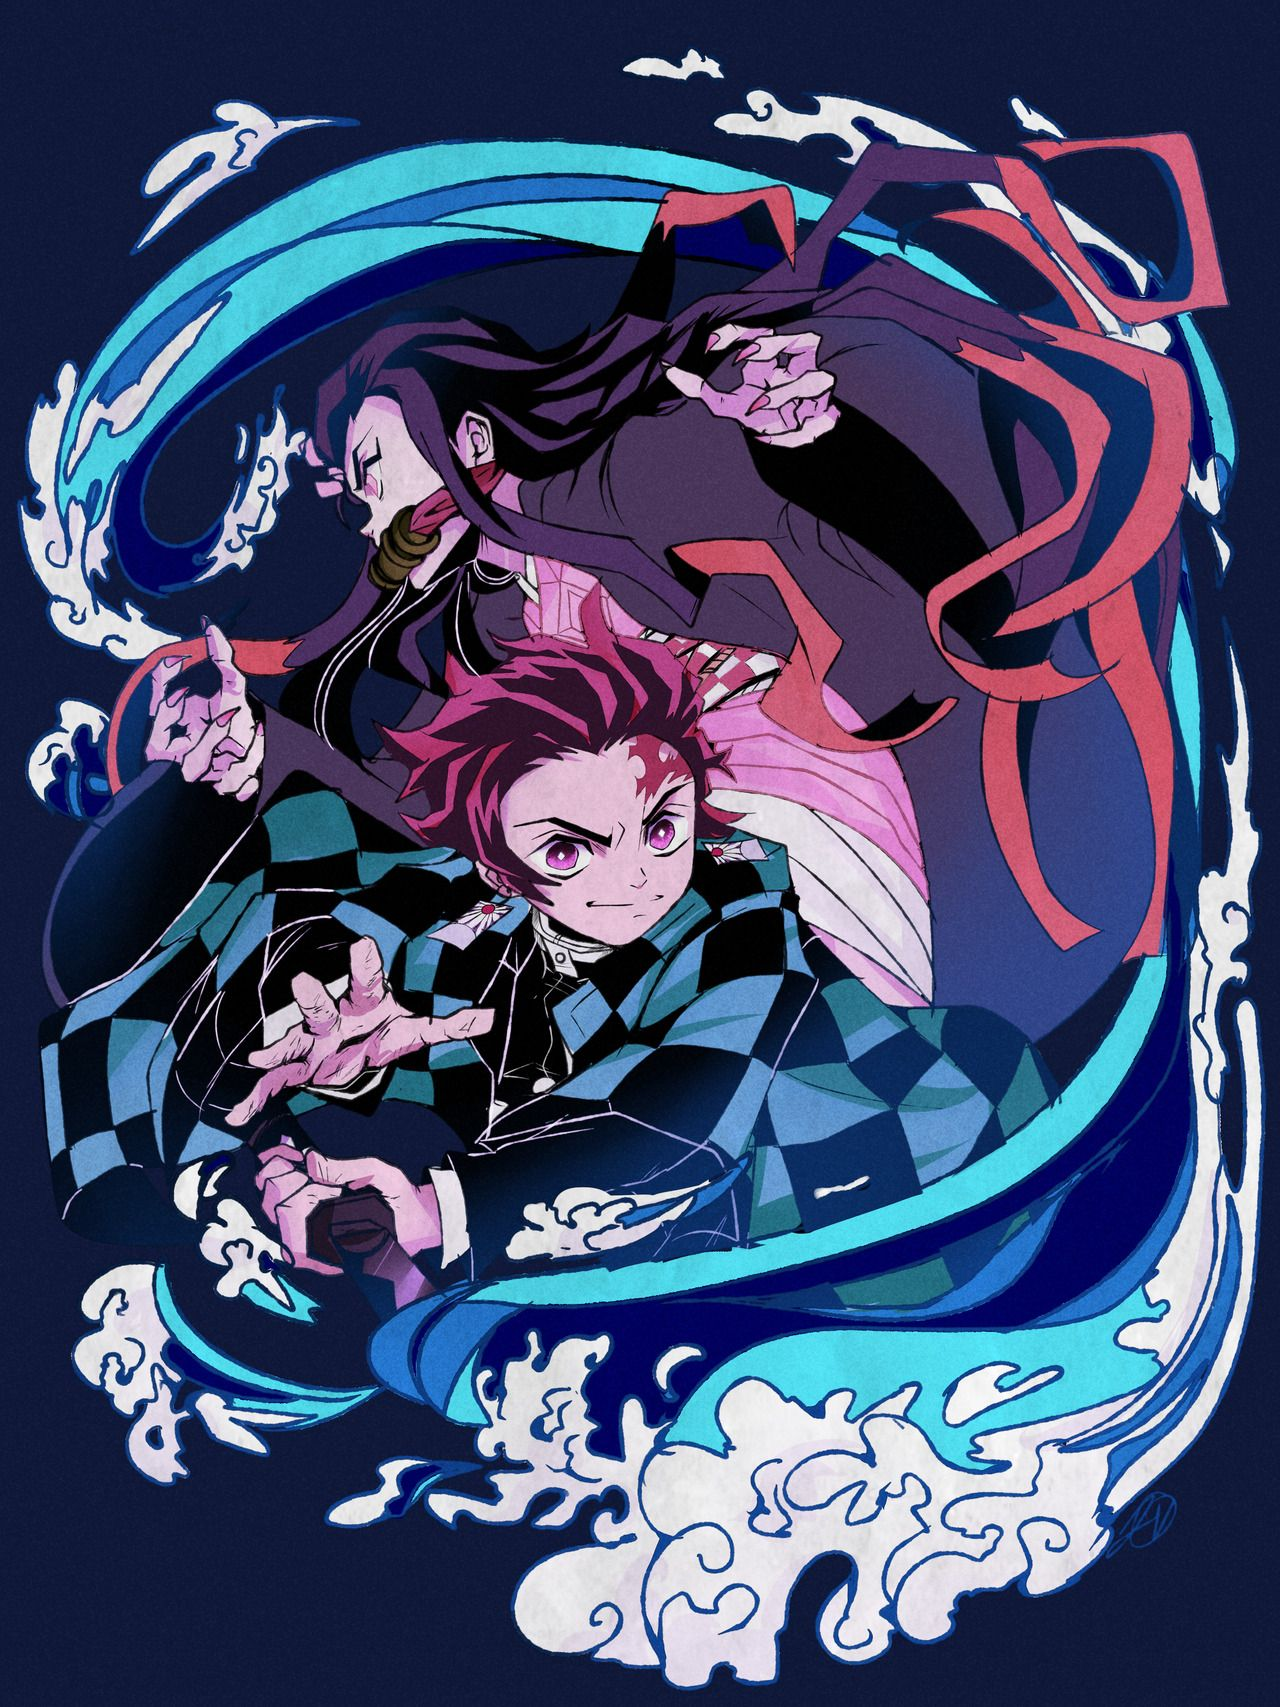 It S Honestly Insanely Fun To Draw In This Style First Thing I Ve Ever Drawn Of Kimetsu No Yaiba Please Give The Manga And Ani Anime Demon Slayer Anime Anime